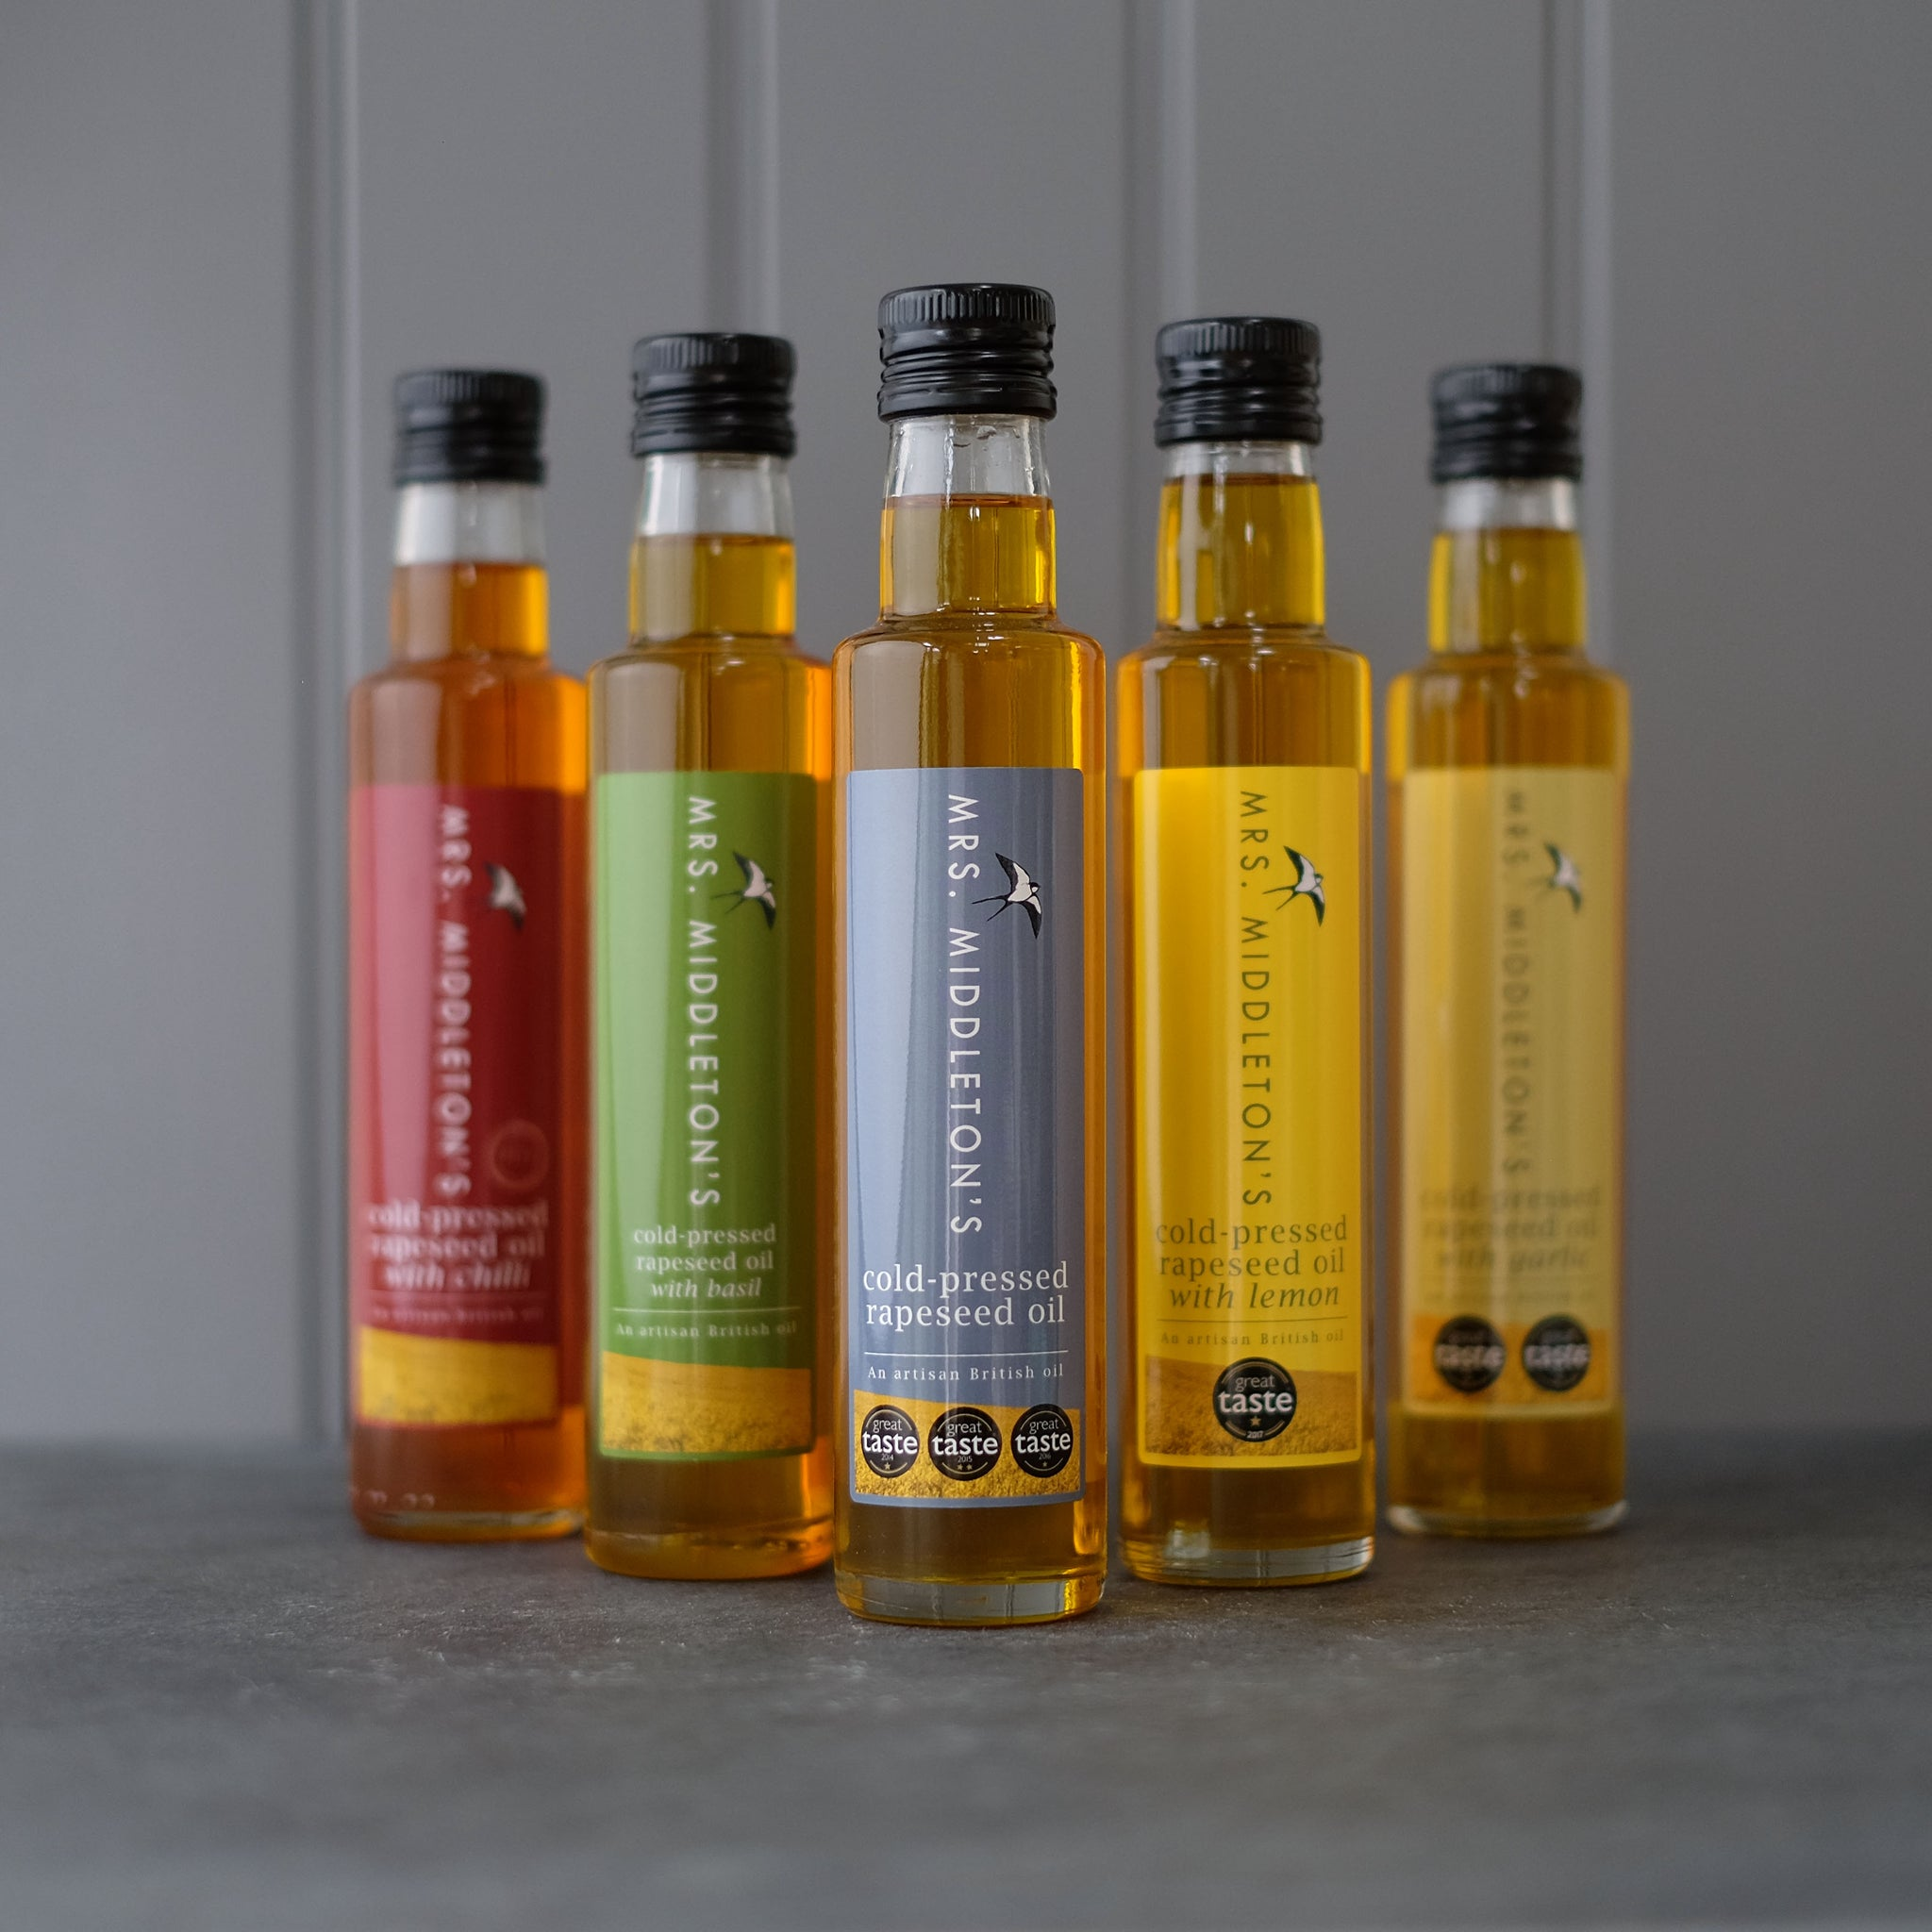 Cold-pressed rapeseed oil multipack